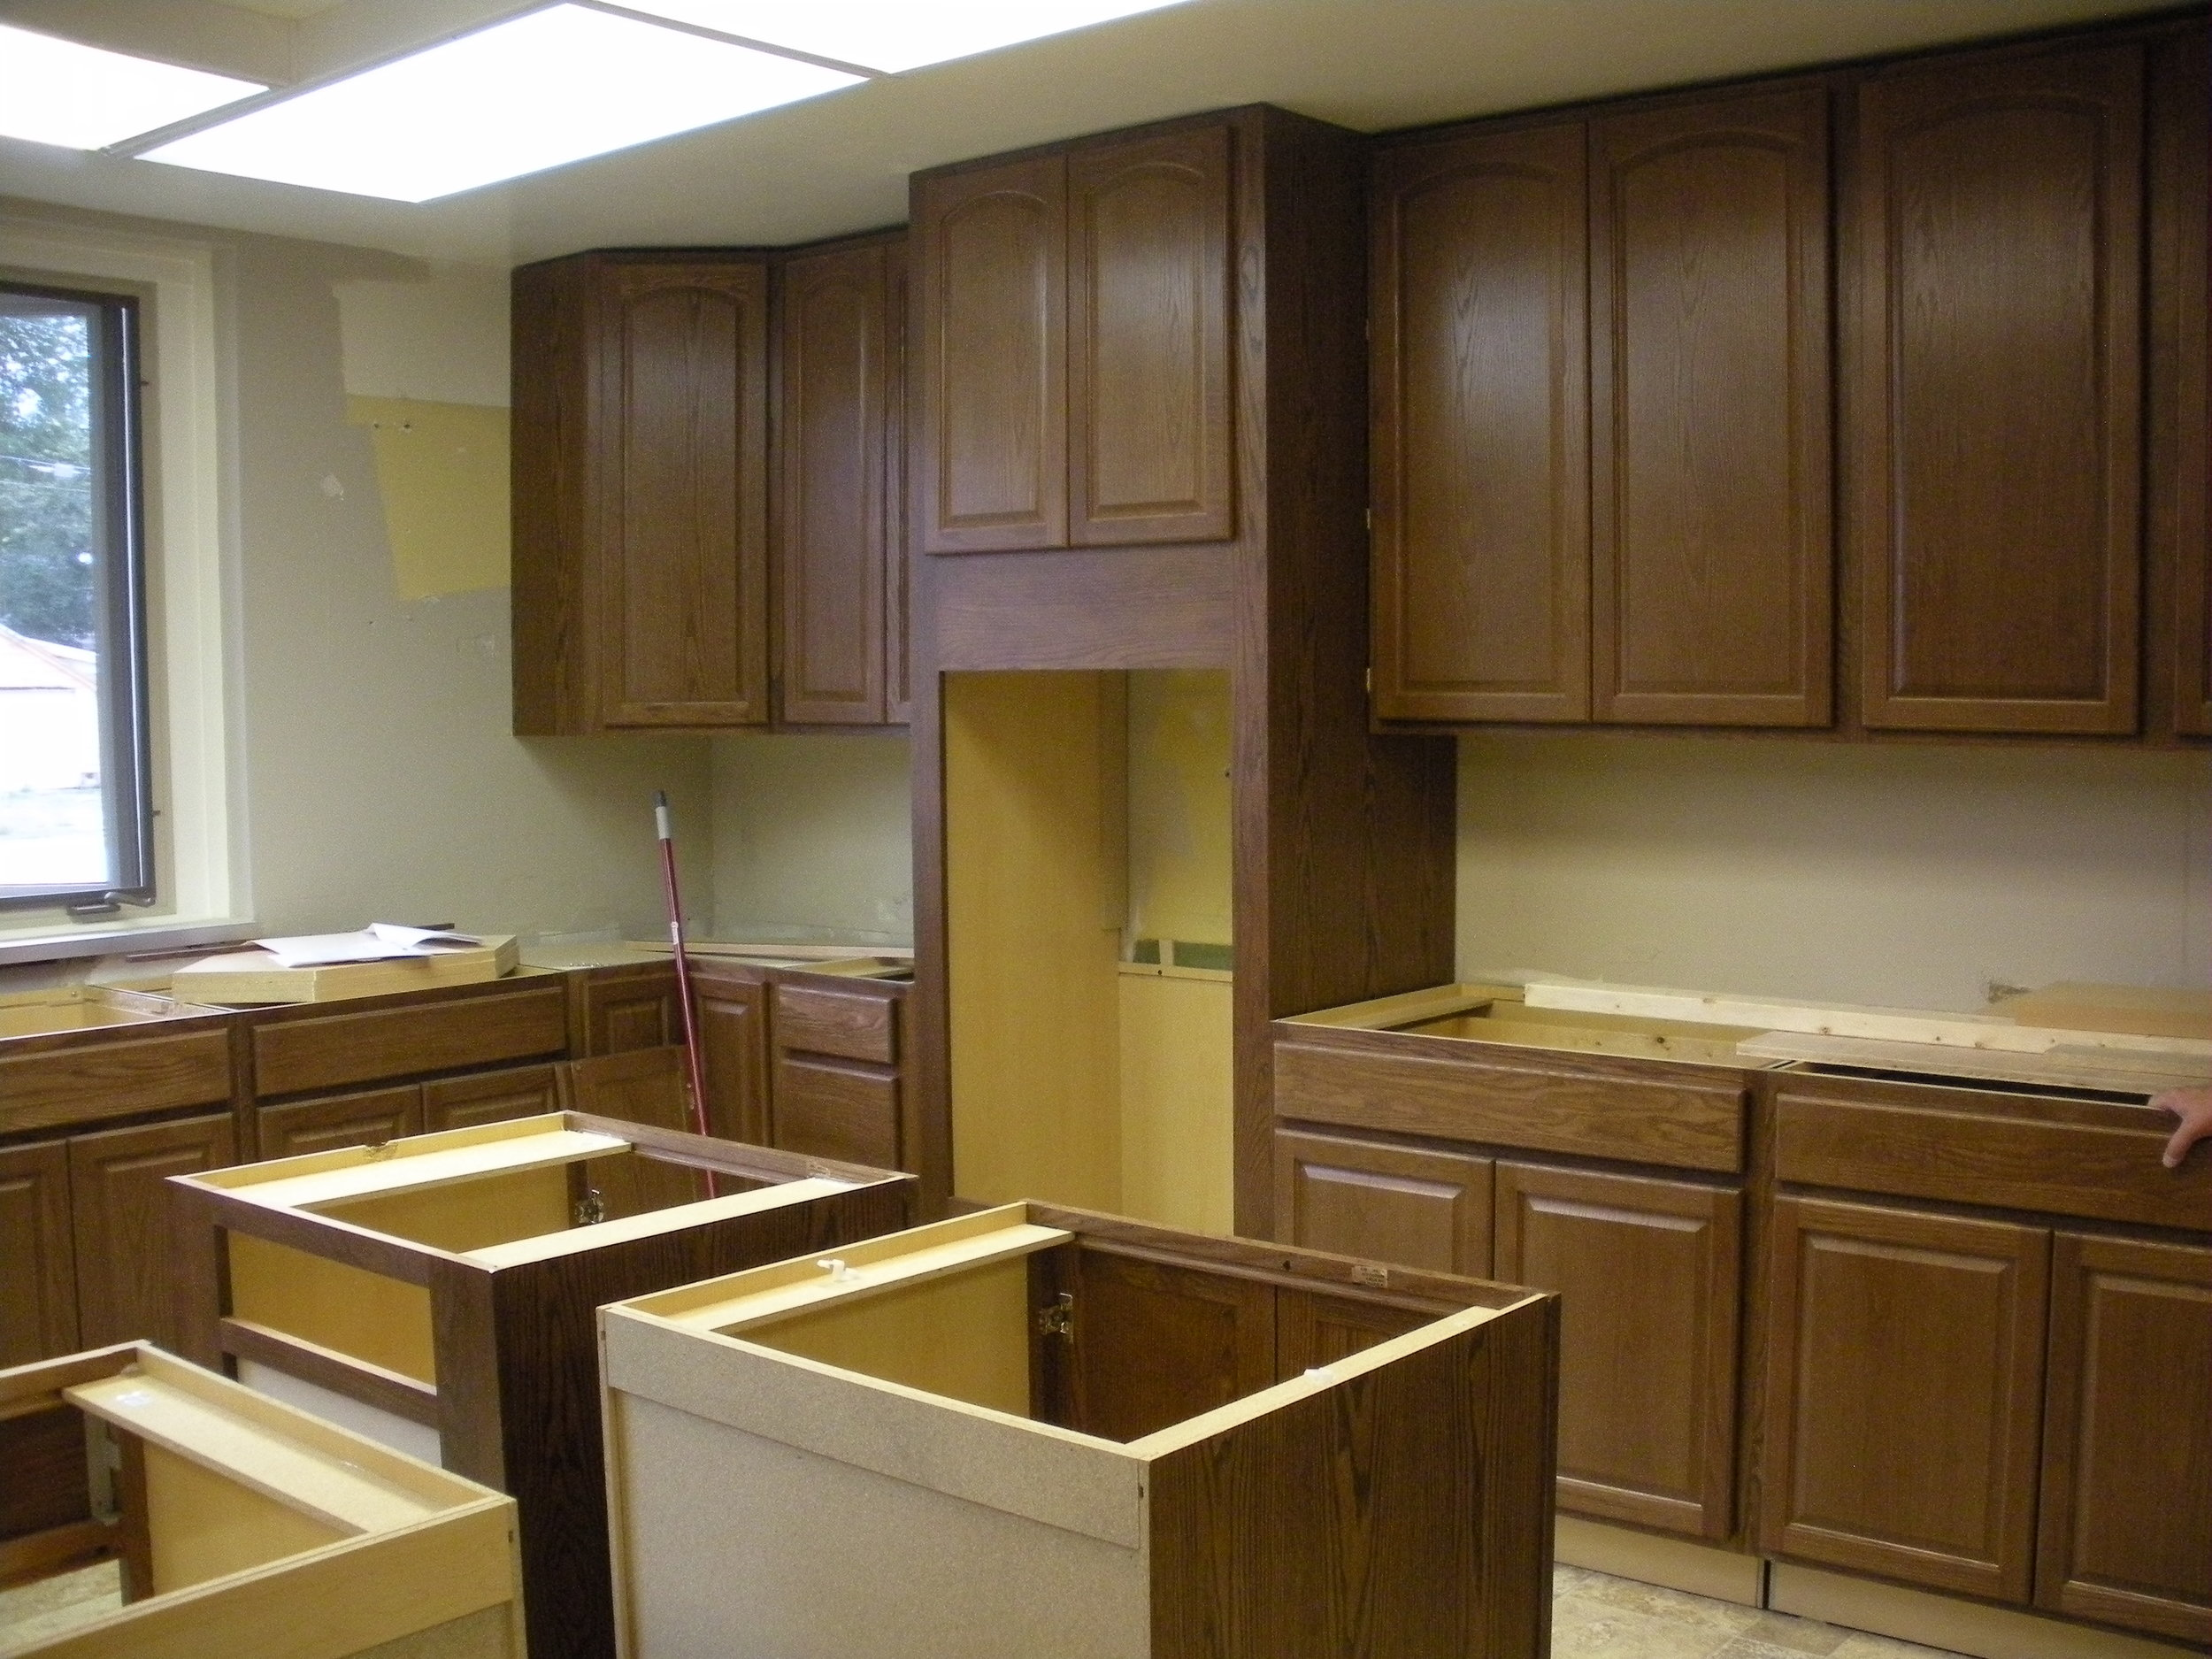 Renovation of Kitchen 2013 006.jpg